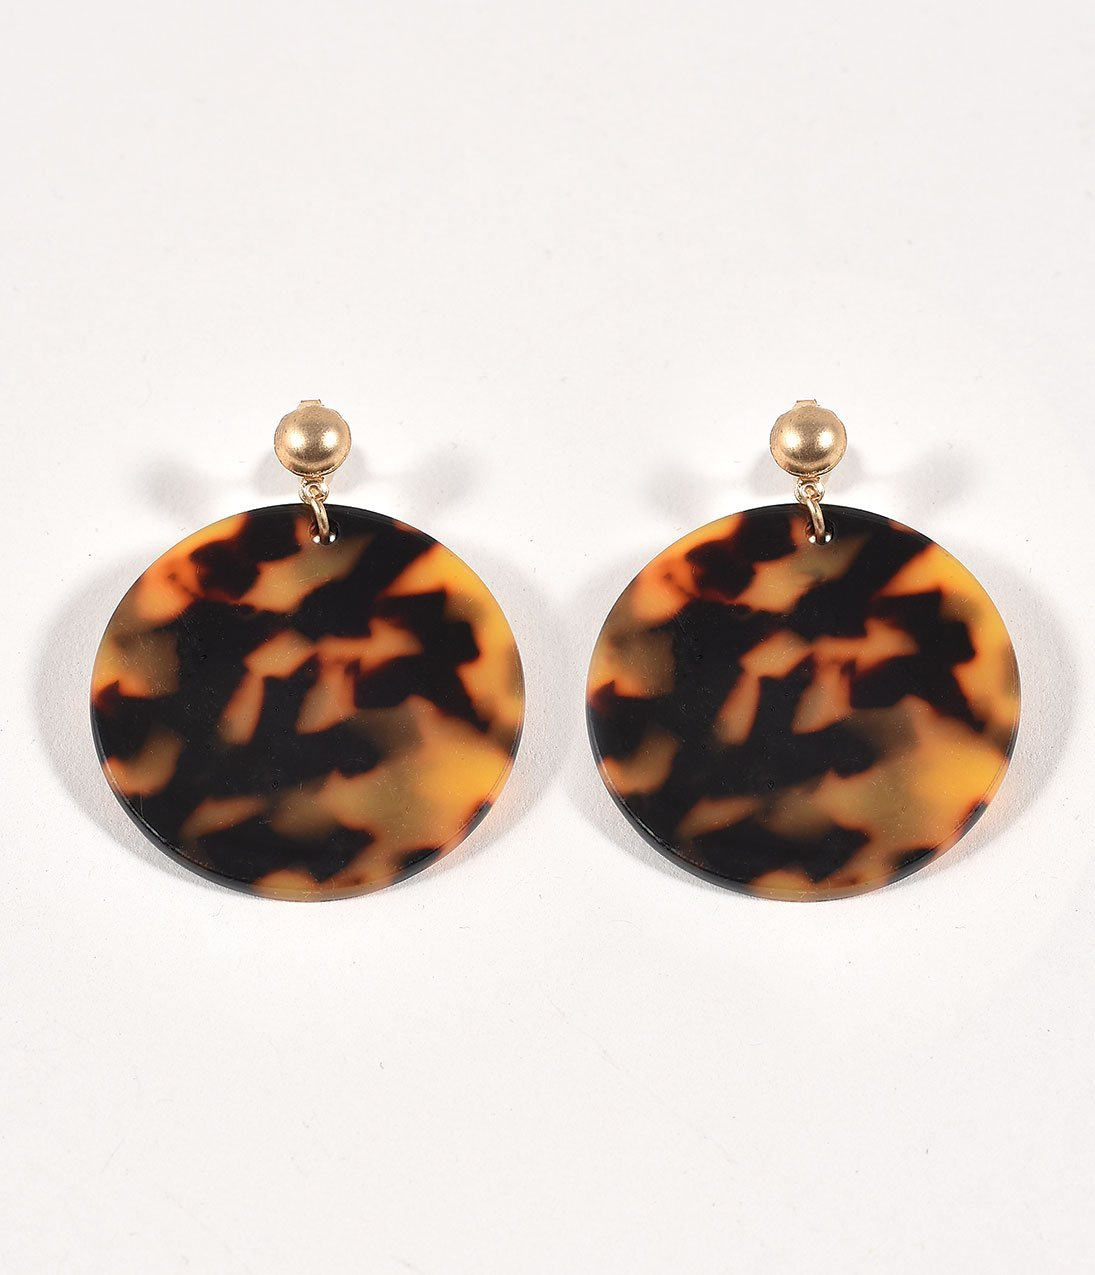 Tortoise_Shell_Circular_Disc_Drop_Earrings__1_2048x2048.jpg